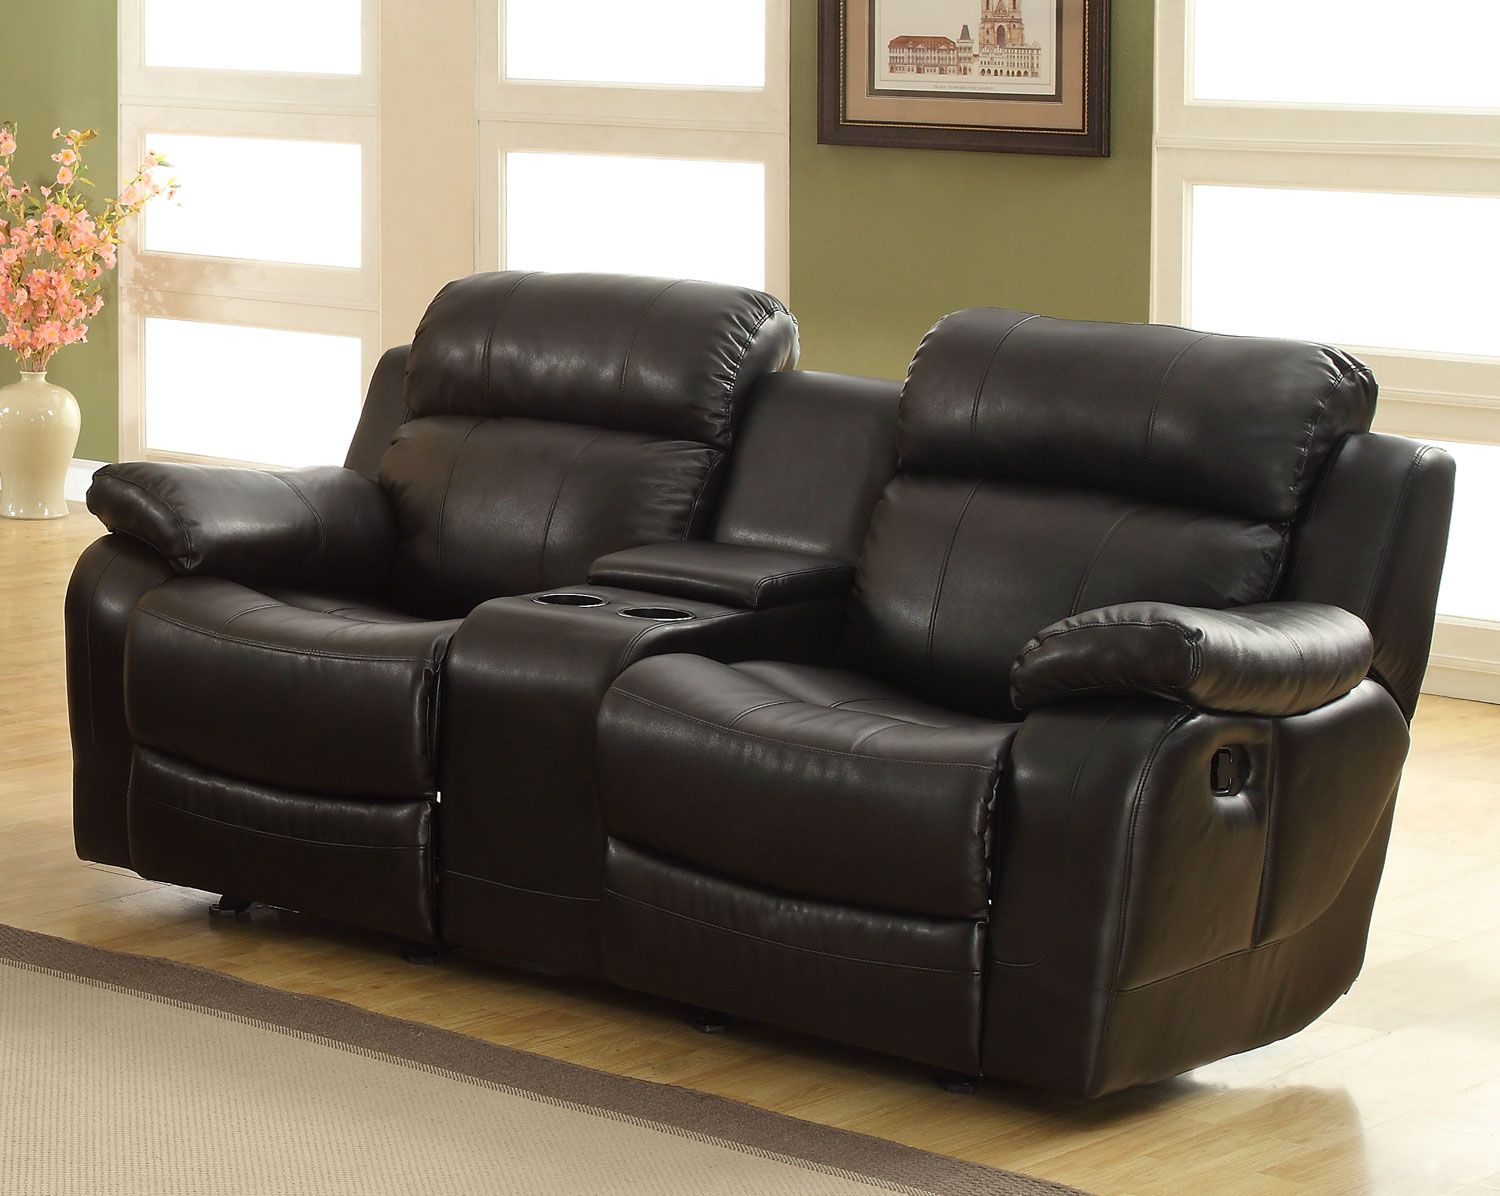 Homelegance Marille Love Seat Glider Recliner with Center Console - Black - Bonded Leather Match : 2 seater recliner leather sofa - islam-shia.org